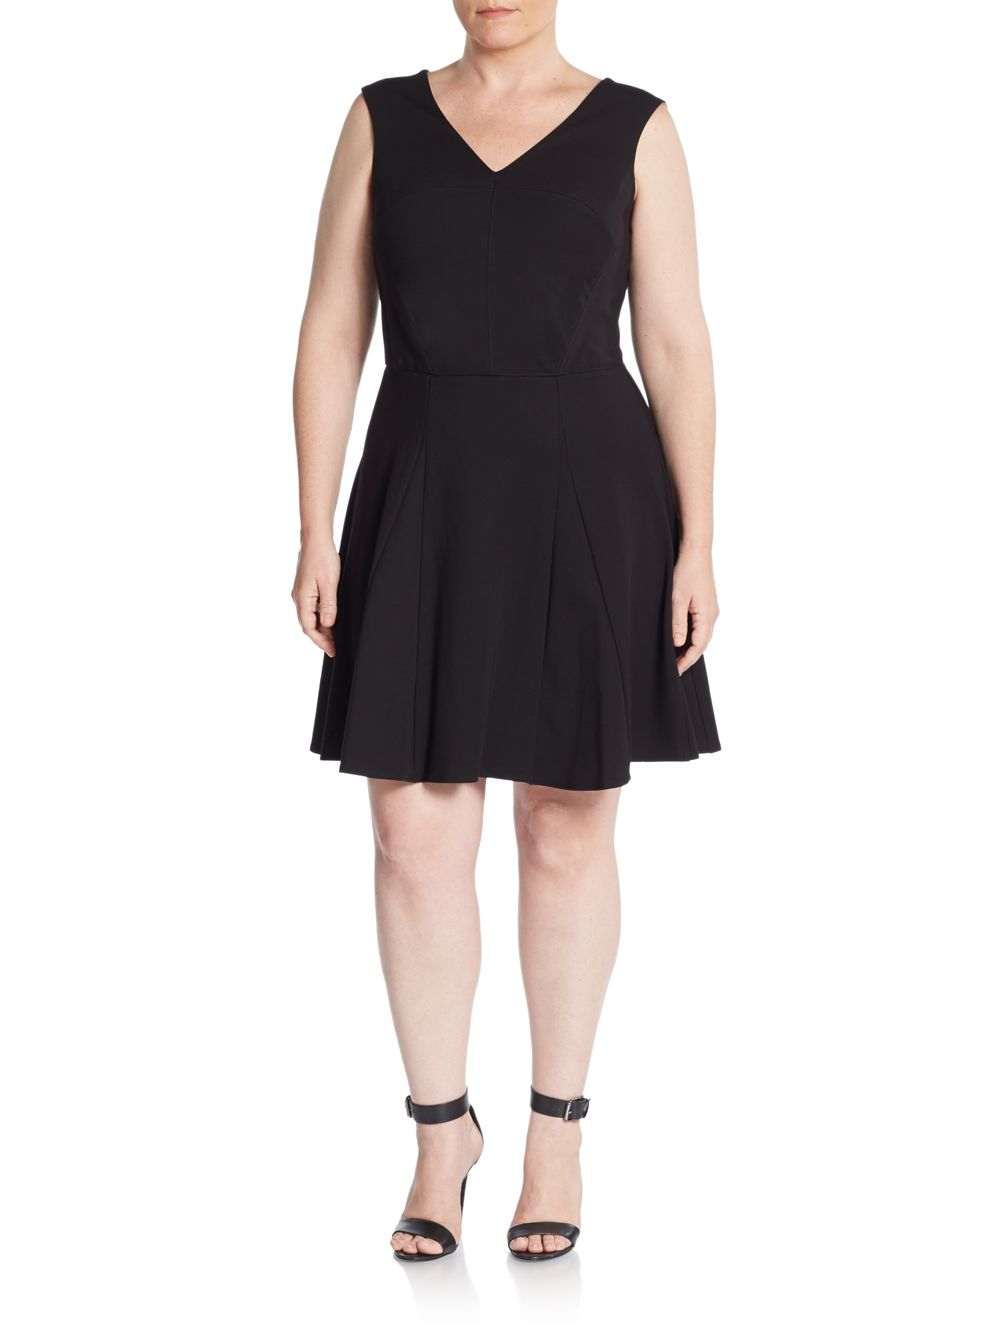 Lyst Abs Plus Size V Neck Fit And Flare Dress In Black